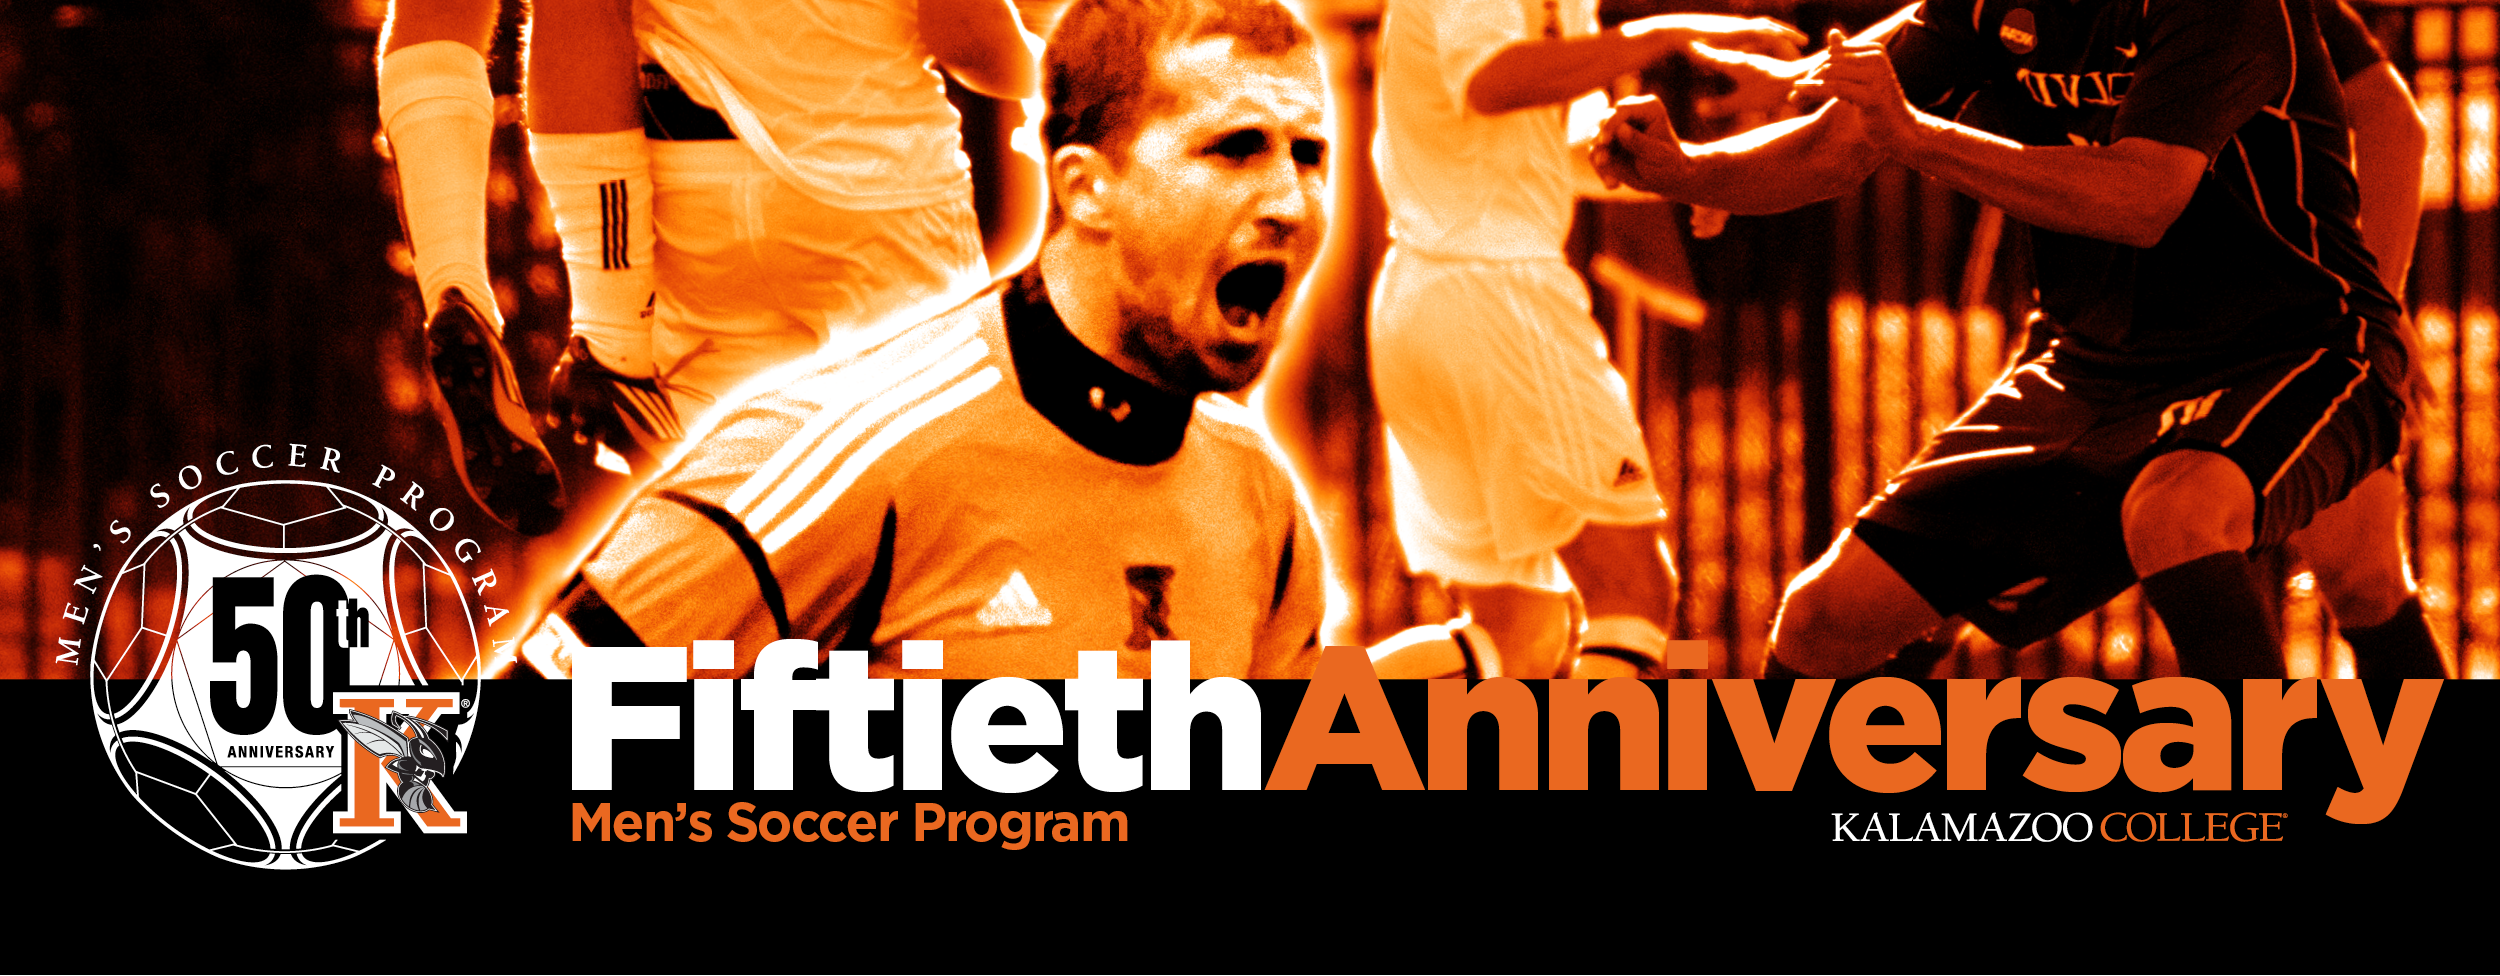 Fiftieth Anniversary of Men's Soccer